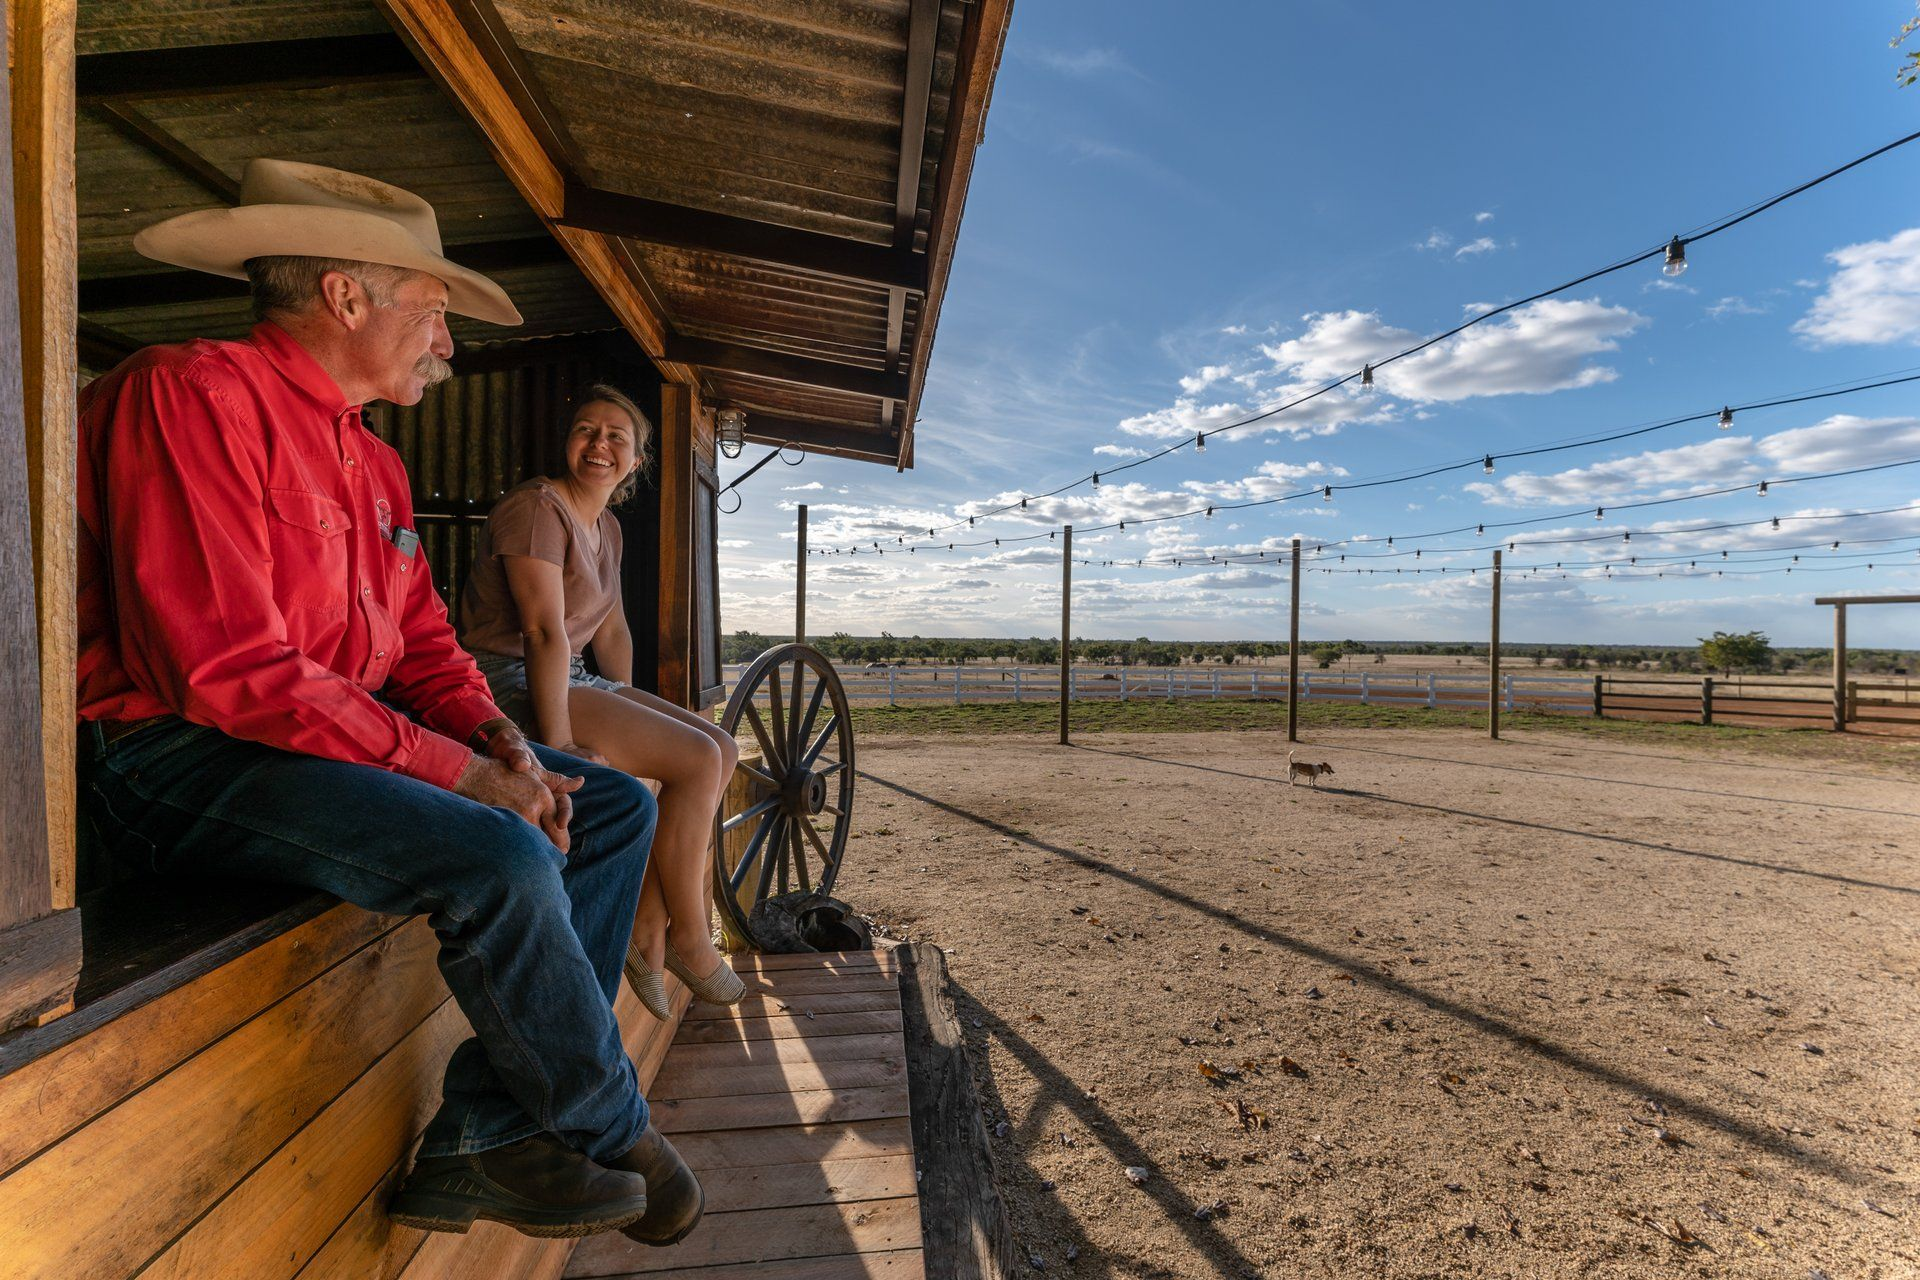 Outback, History & Heritage